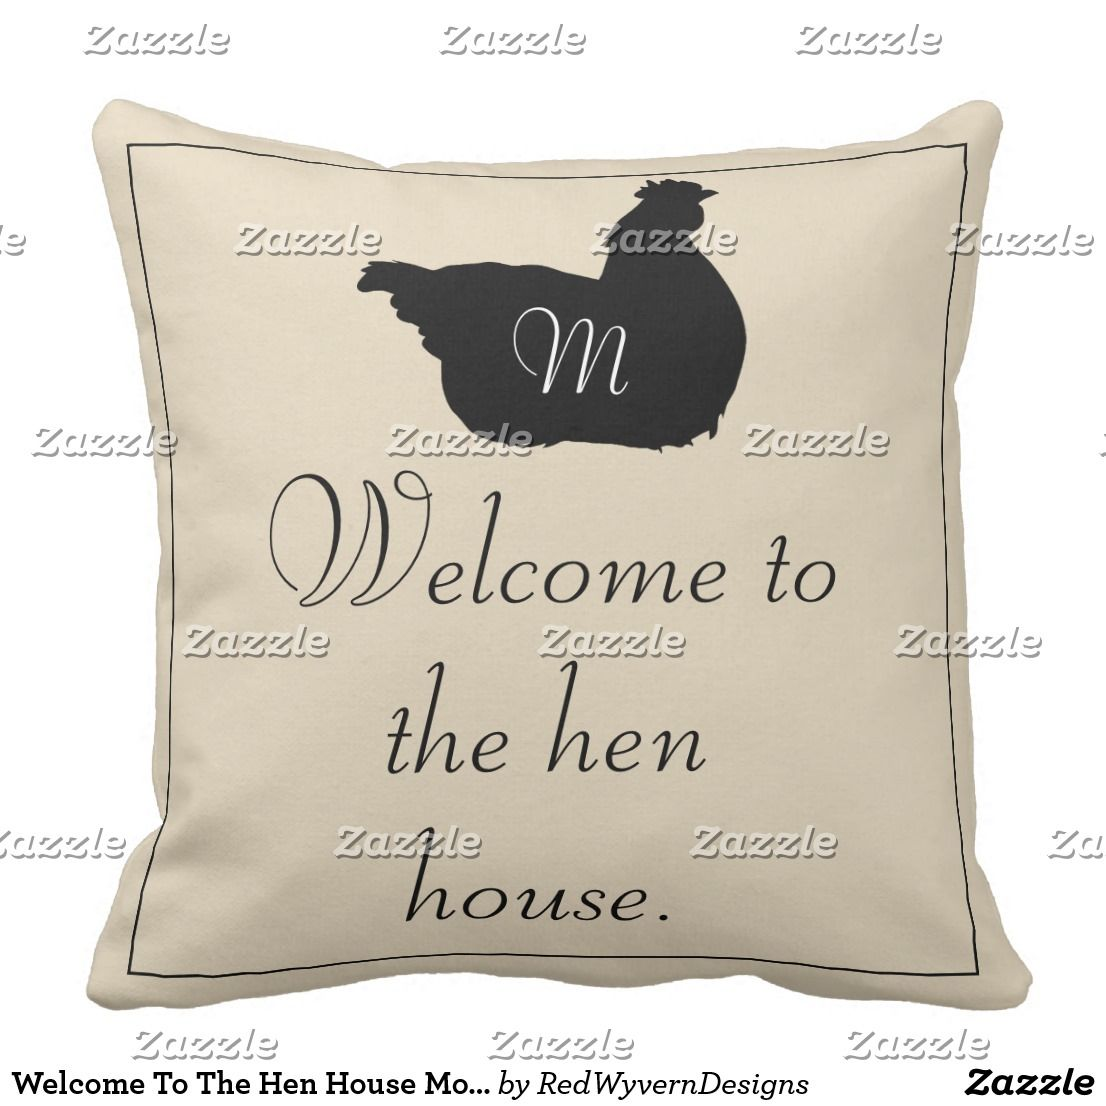 Welcome To The Hen House Monogram Throw Pillow Zazzle Com Monogram Throw Pillow Throw Pillows Custom Pillows